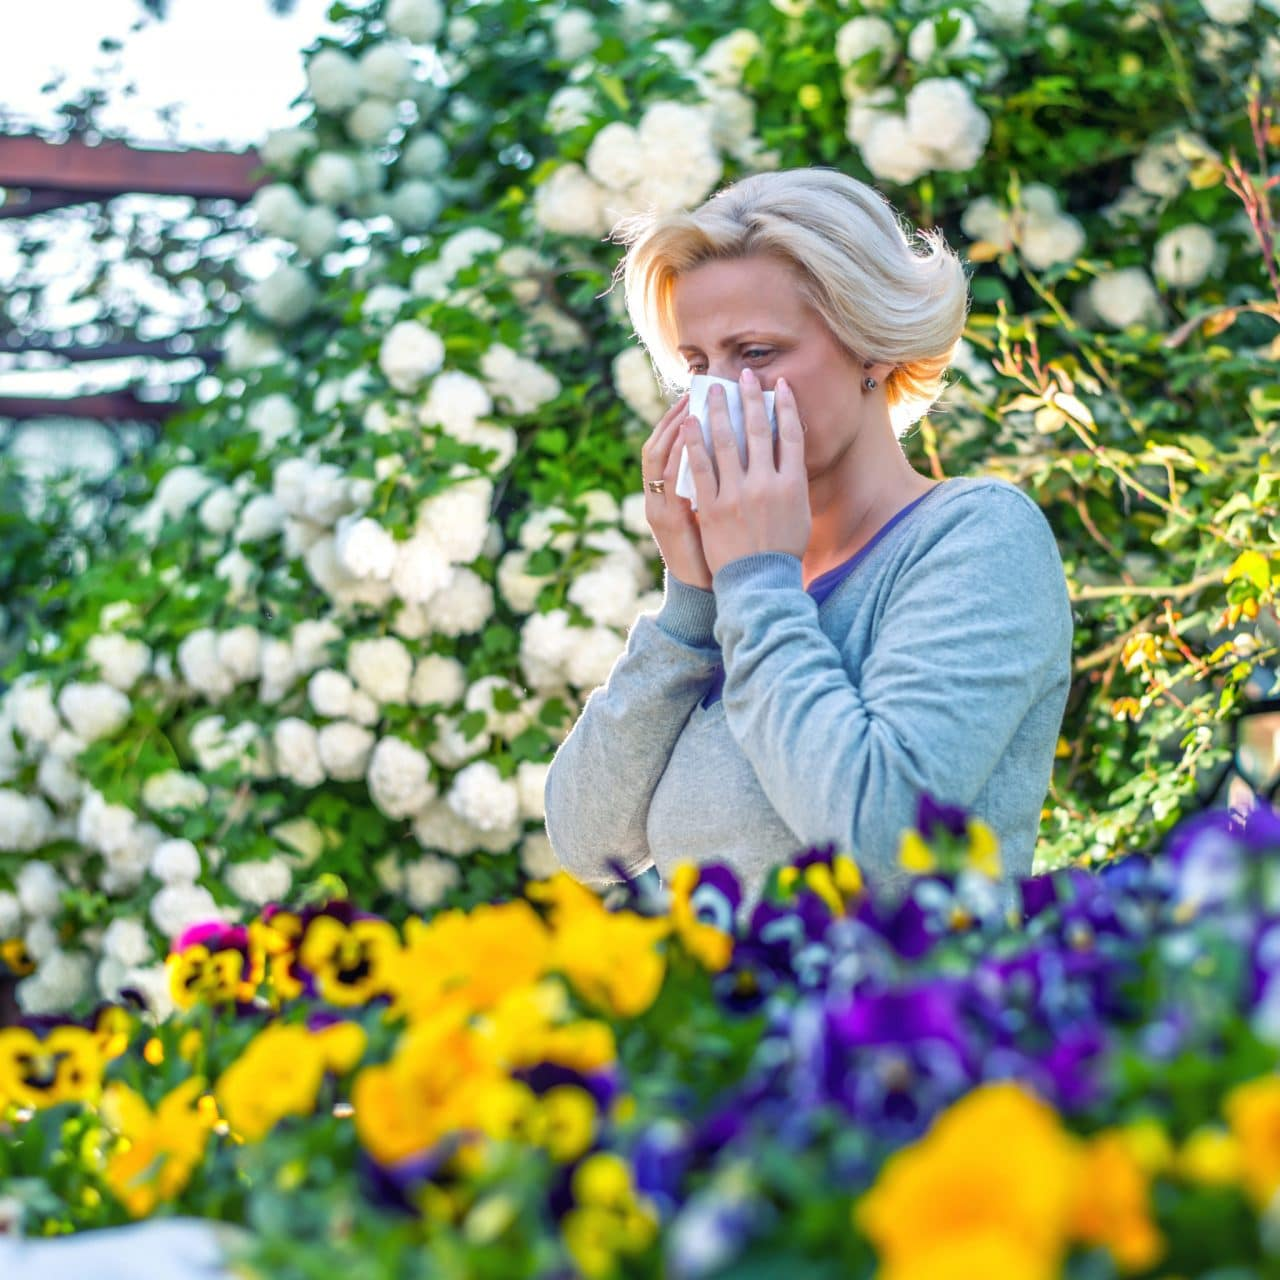 A person standing in a flower garden and blowing their nose